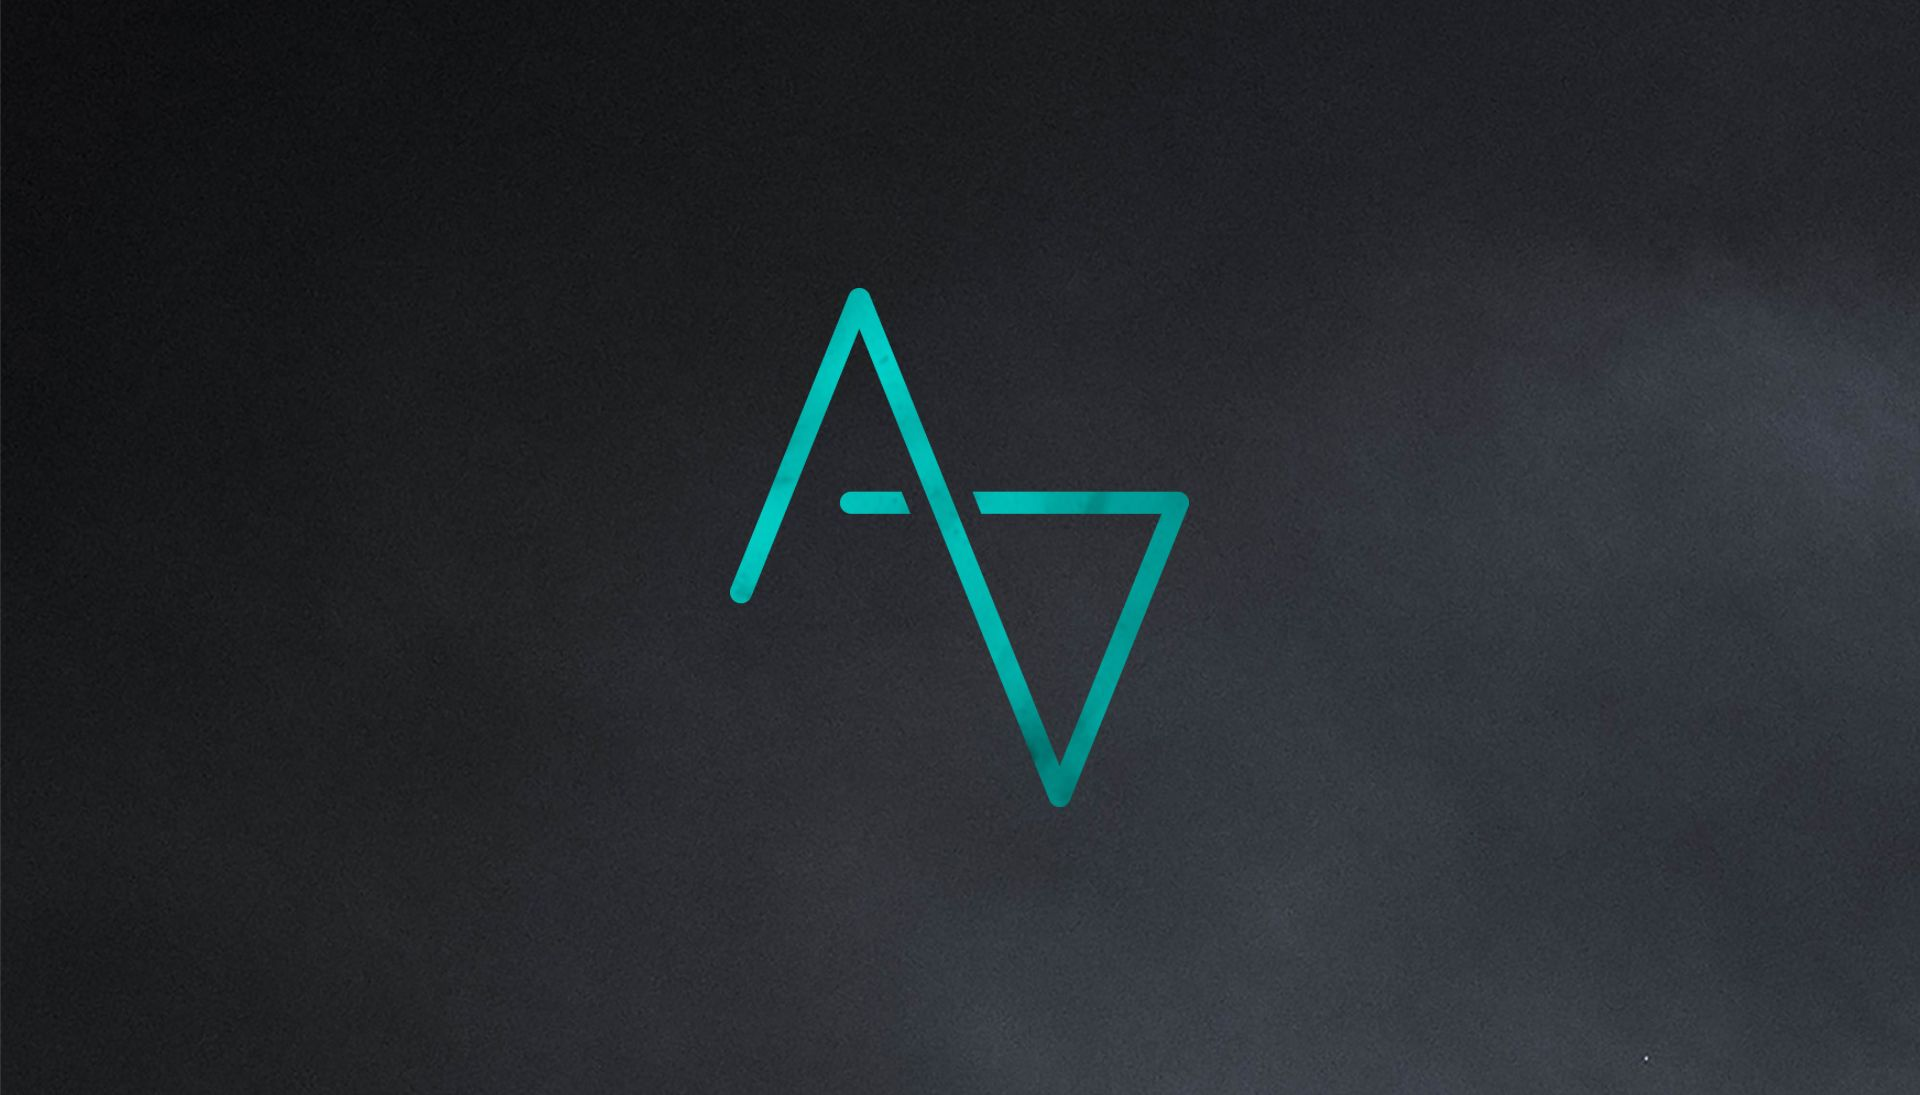 AnDub logo on dark background